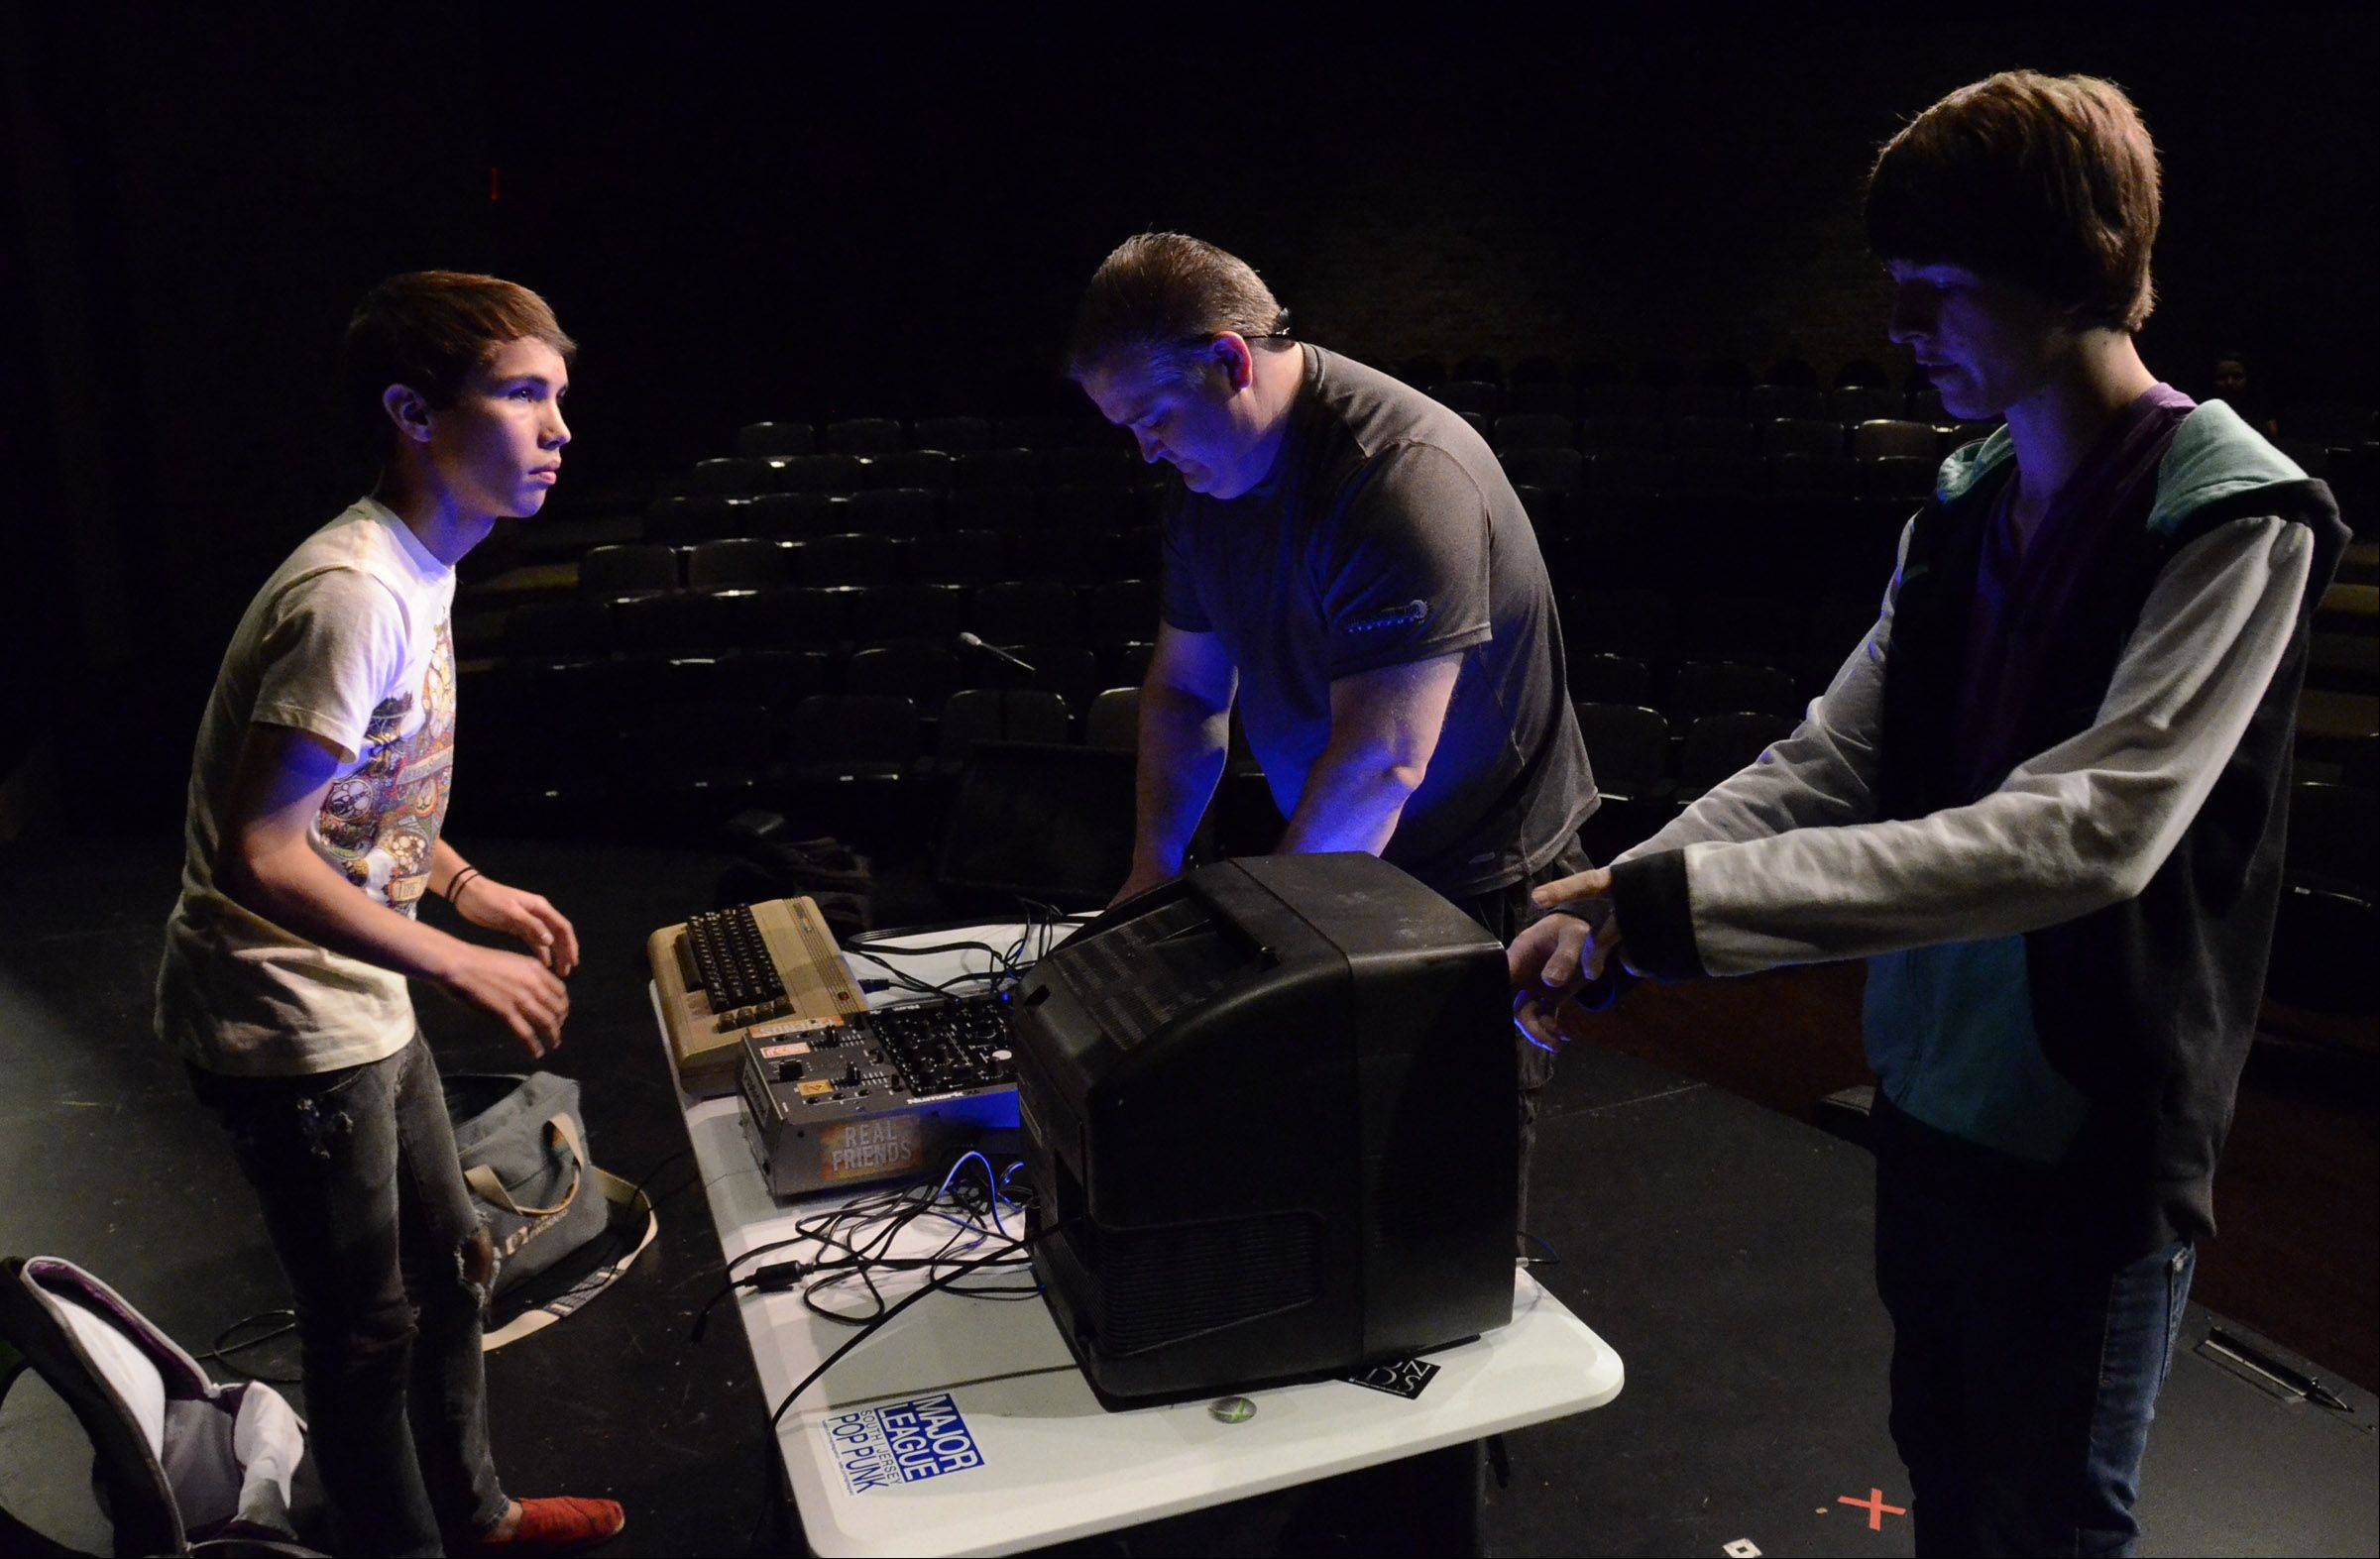 """Sophmore 64"" duo Jake Basala, 16, right, and Calvin Hughes, 17, both of LIndenhurst, set up a Commodore 64 and two Game Boys to create music during the preliminary Suburban Chicago's Got Talent auditions at the Metropolis Performing Arts Centre in Arlington Heights on Friday."